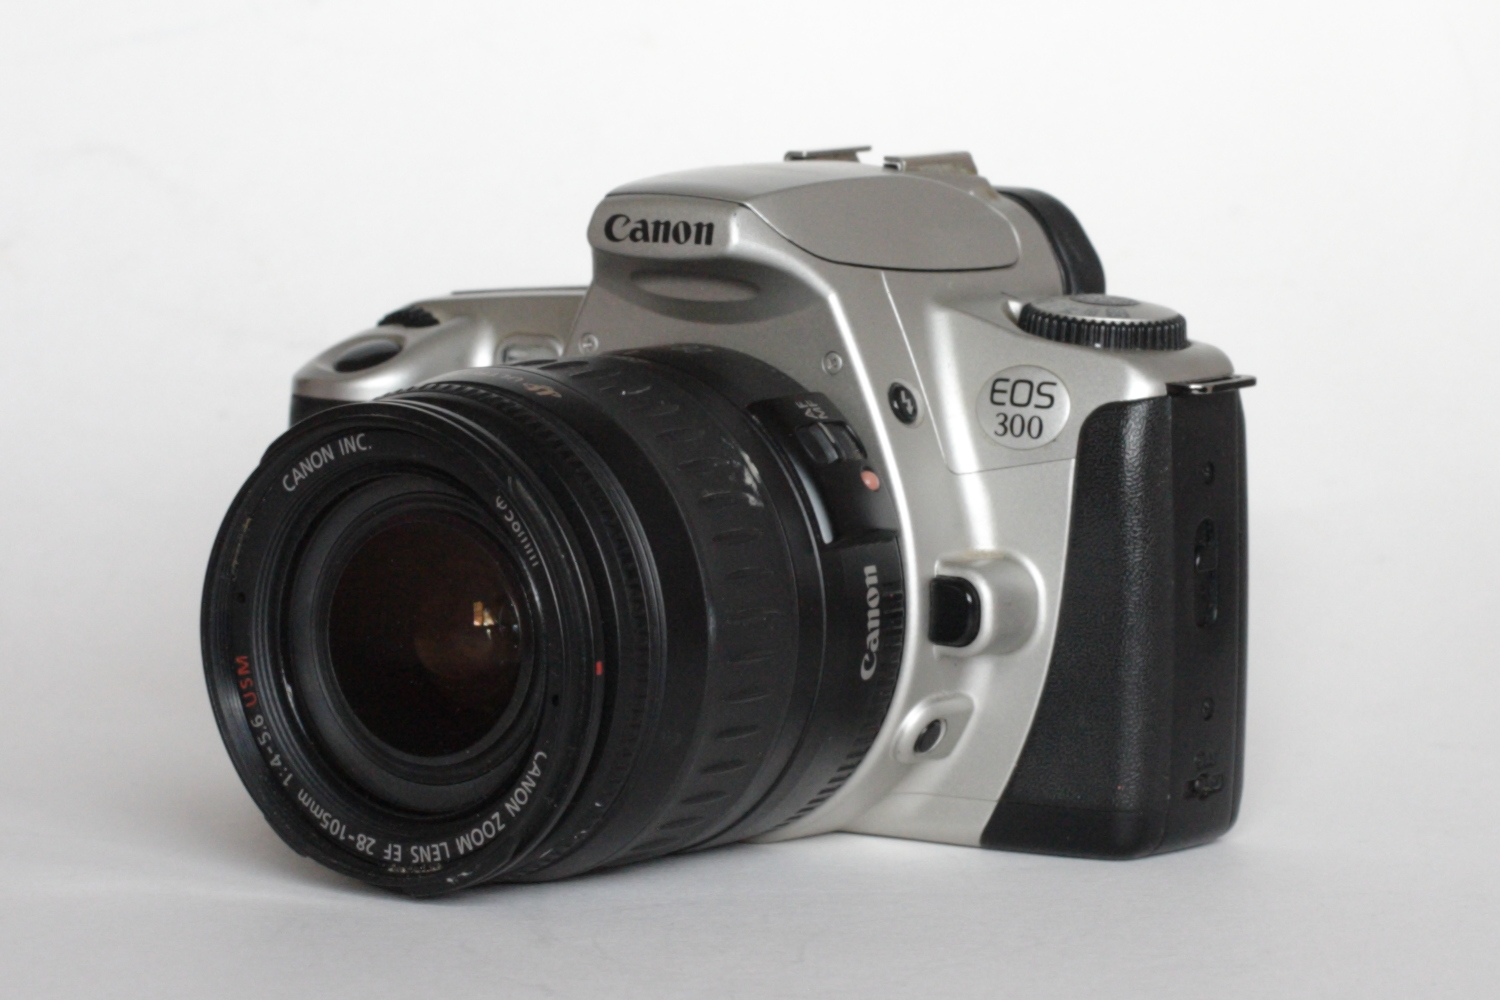 Canon Eos 300 Review Not A Great Camera But A Great